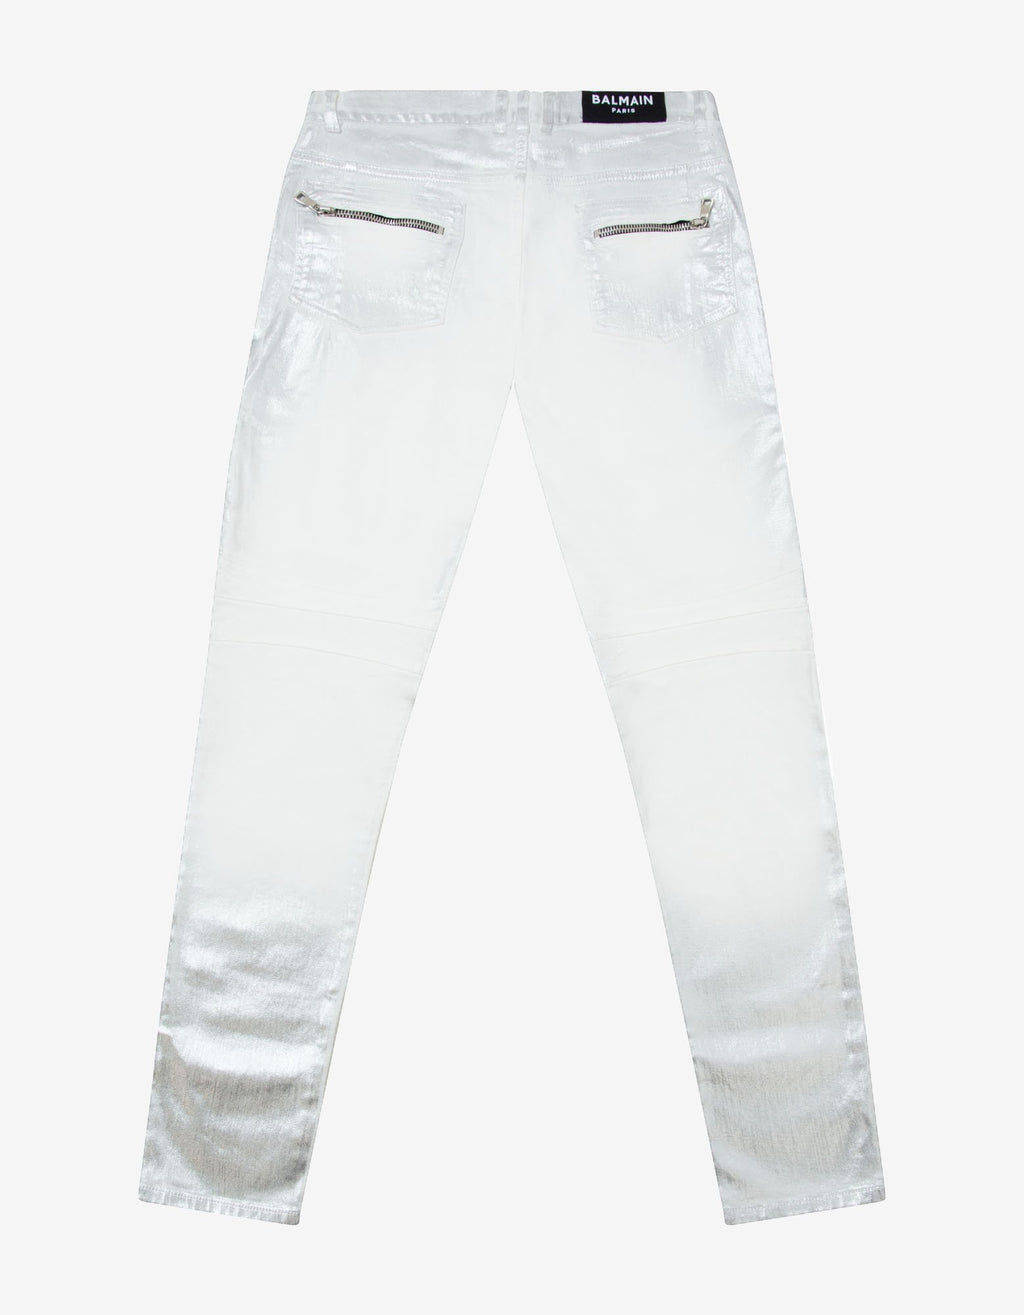 Silver Lamination Ribbed Panel Slim Biker Jeans -